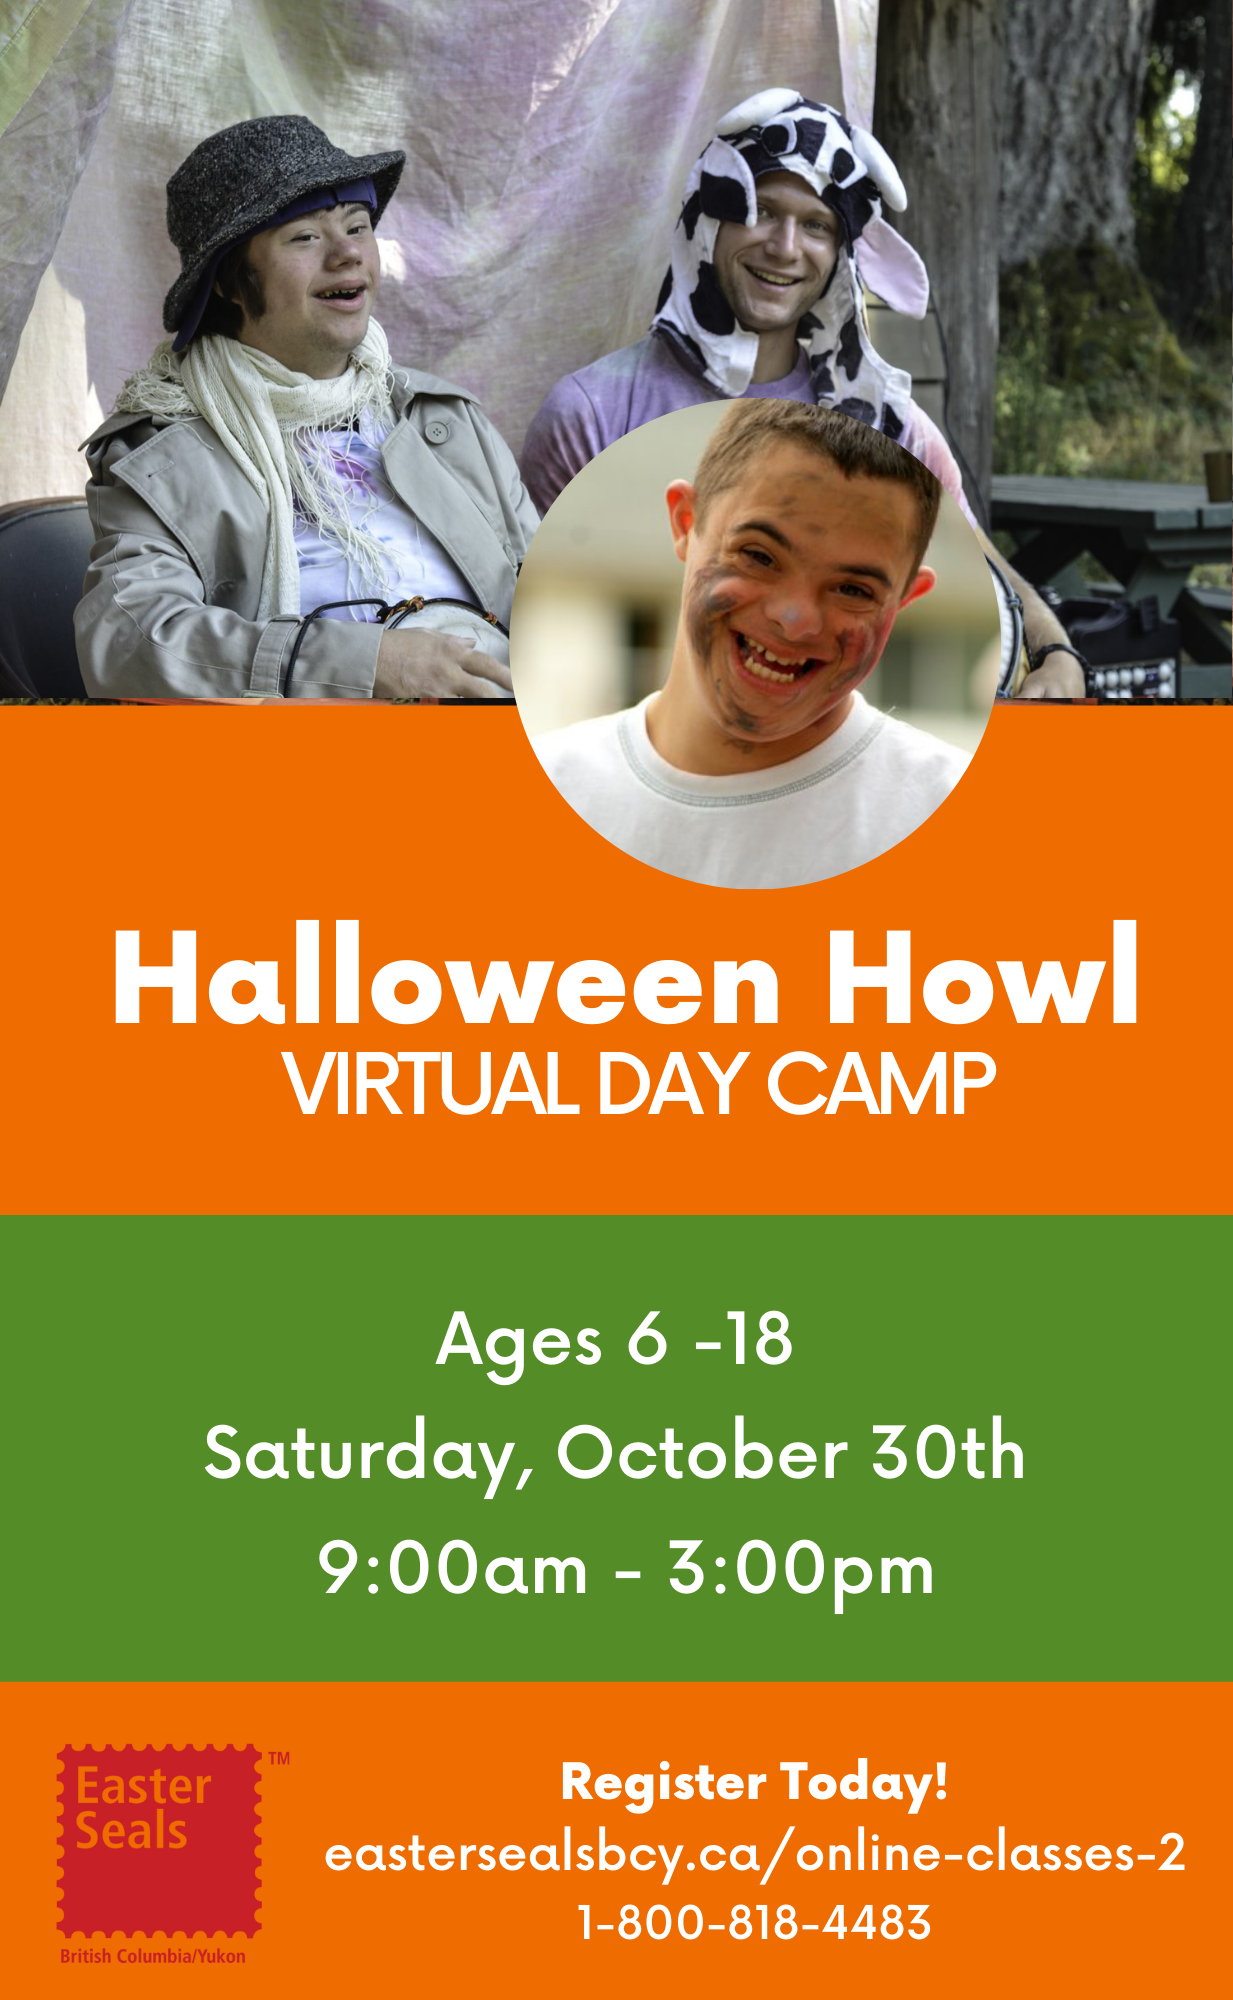 Halloween Howl Virtual Day Camp for Ages 6-18